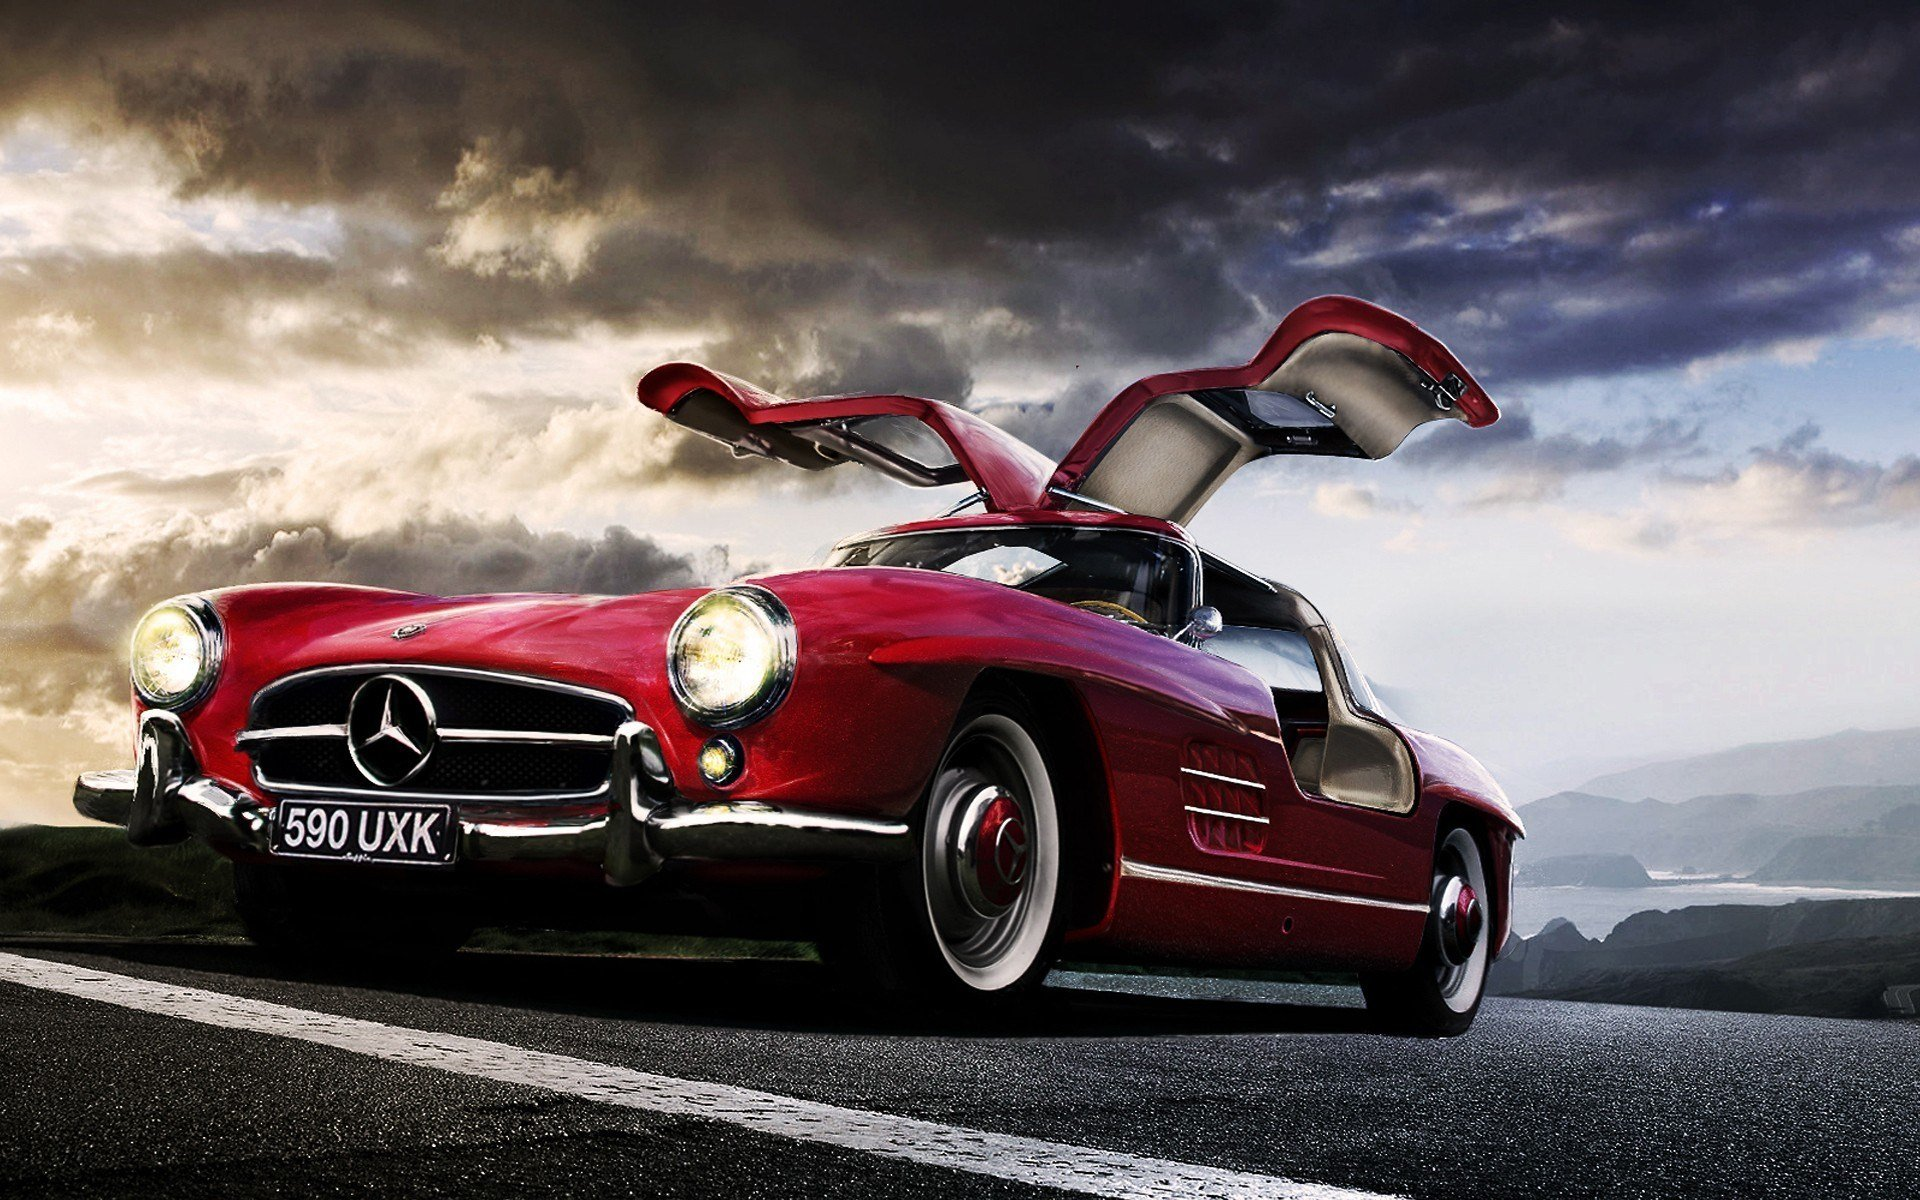 Latest Cars Tires Mercedes Benz Wallpaper Allwallpaper In 8423 Free Download